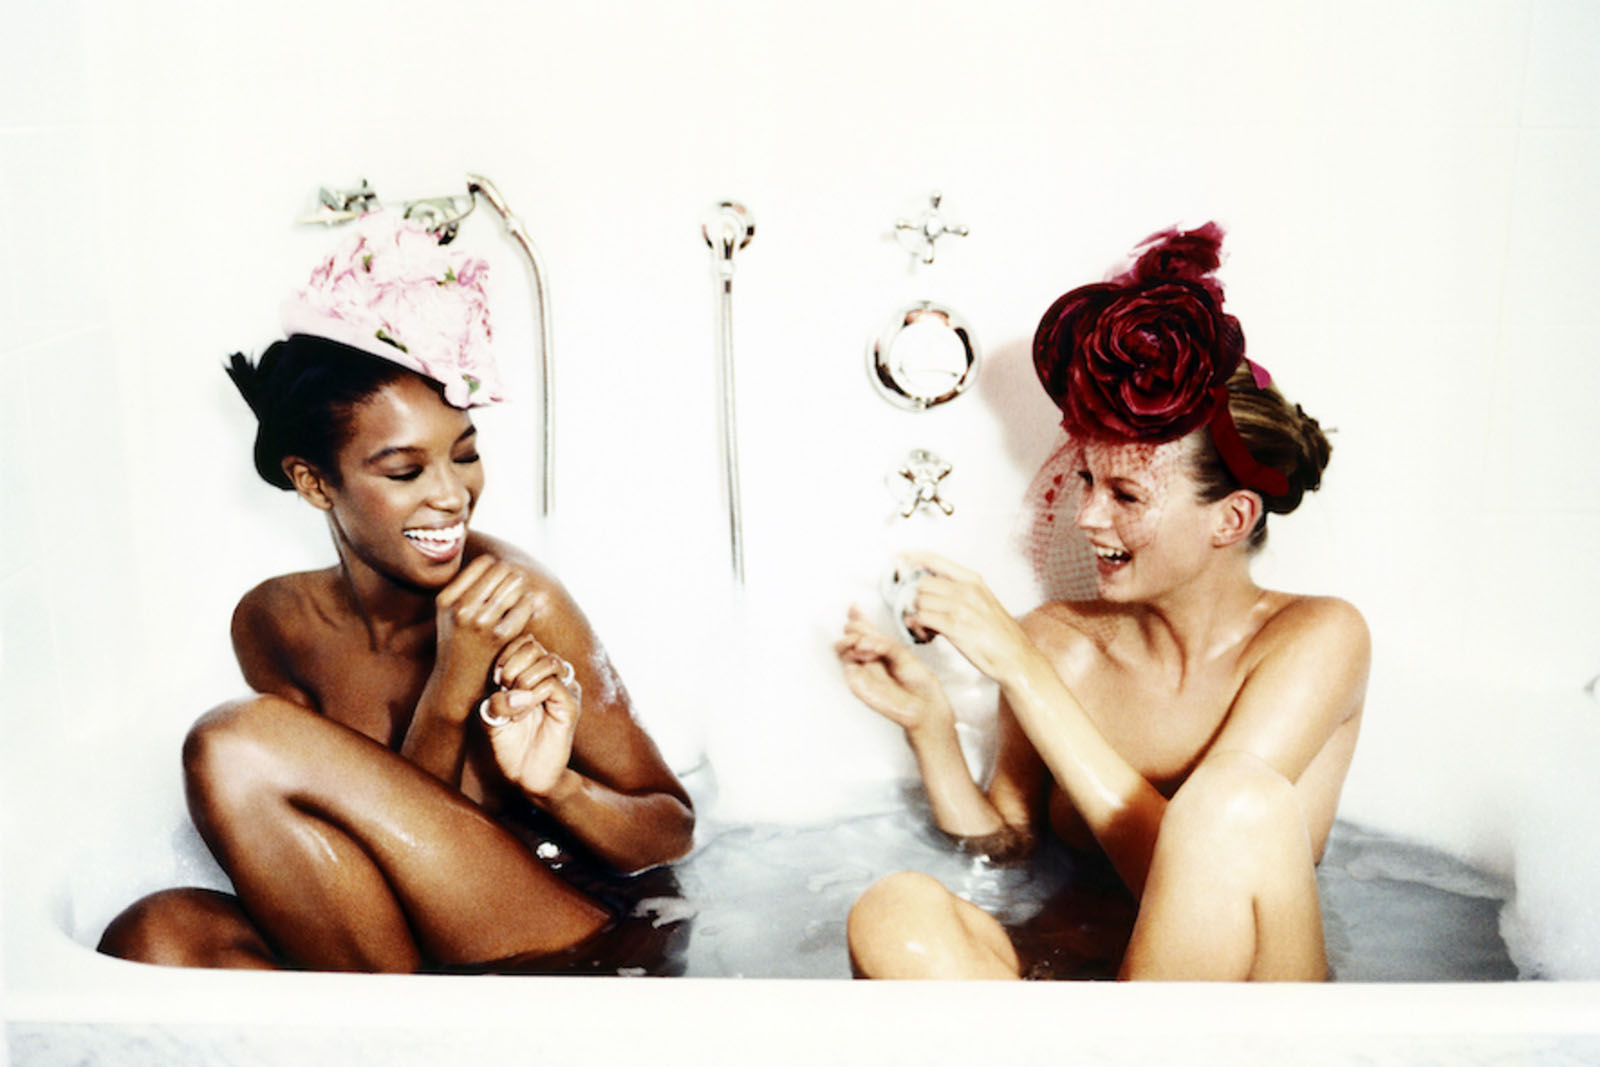 Ellen von Unwerth: Commitment! 30 Years of Capturing Women